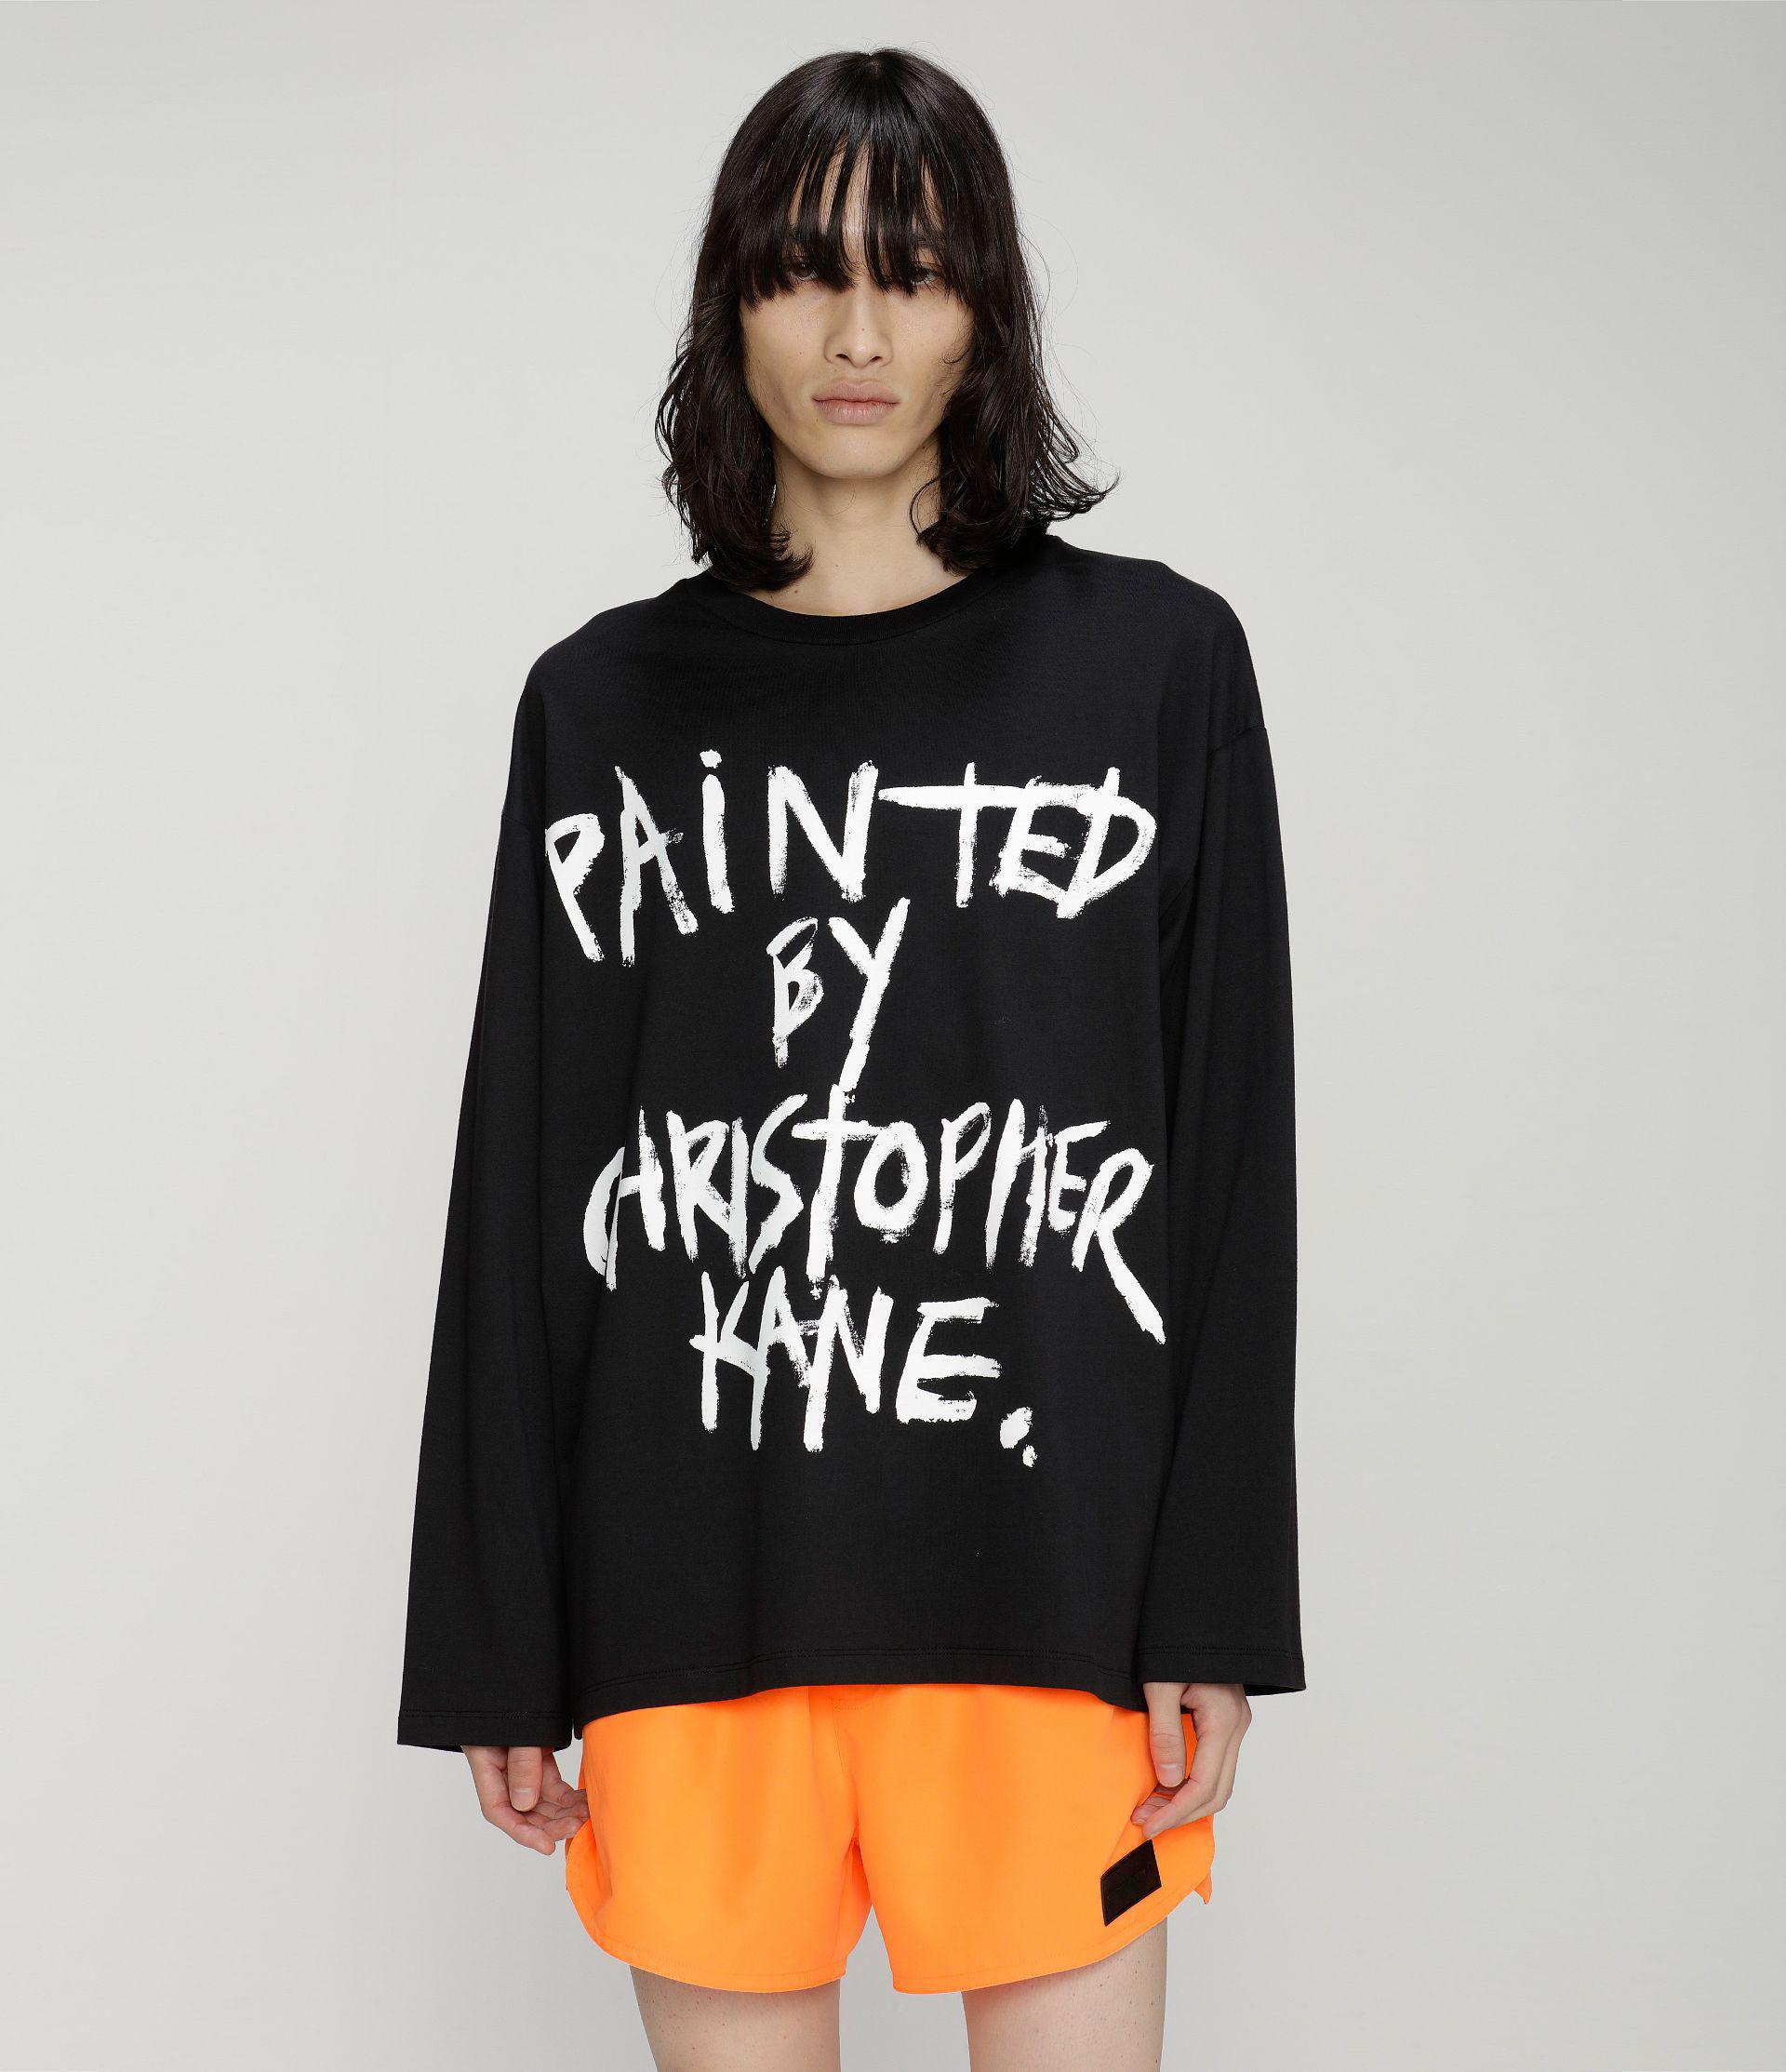 Painted by Christopher Kane long sleeve t-shirt 1